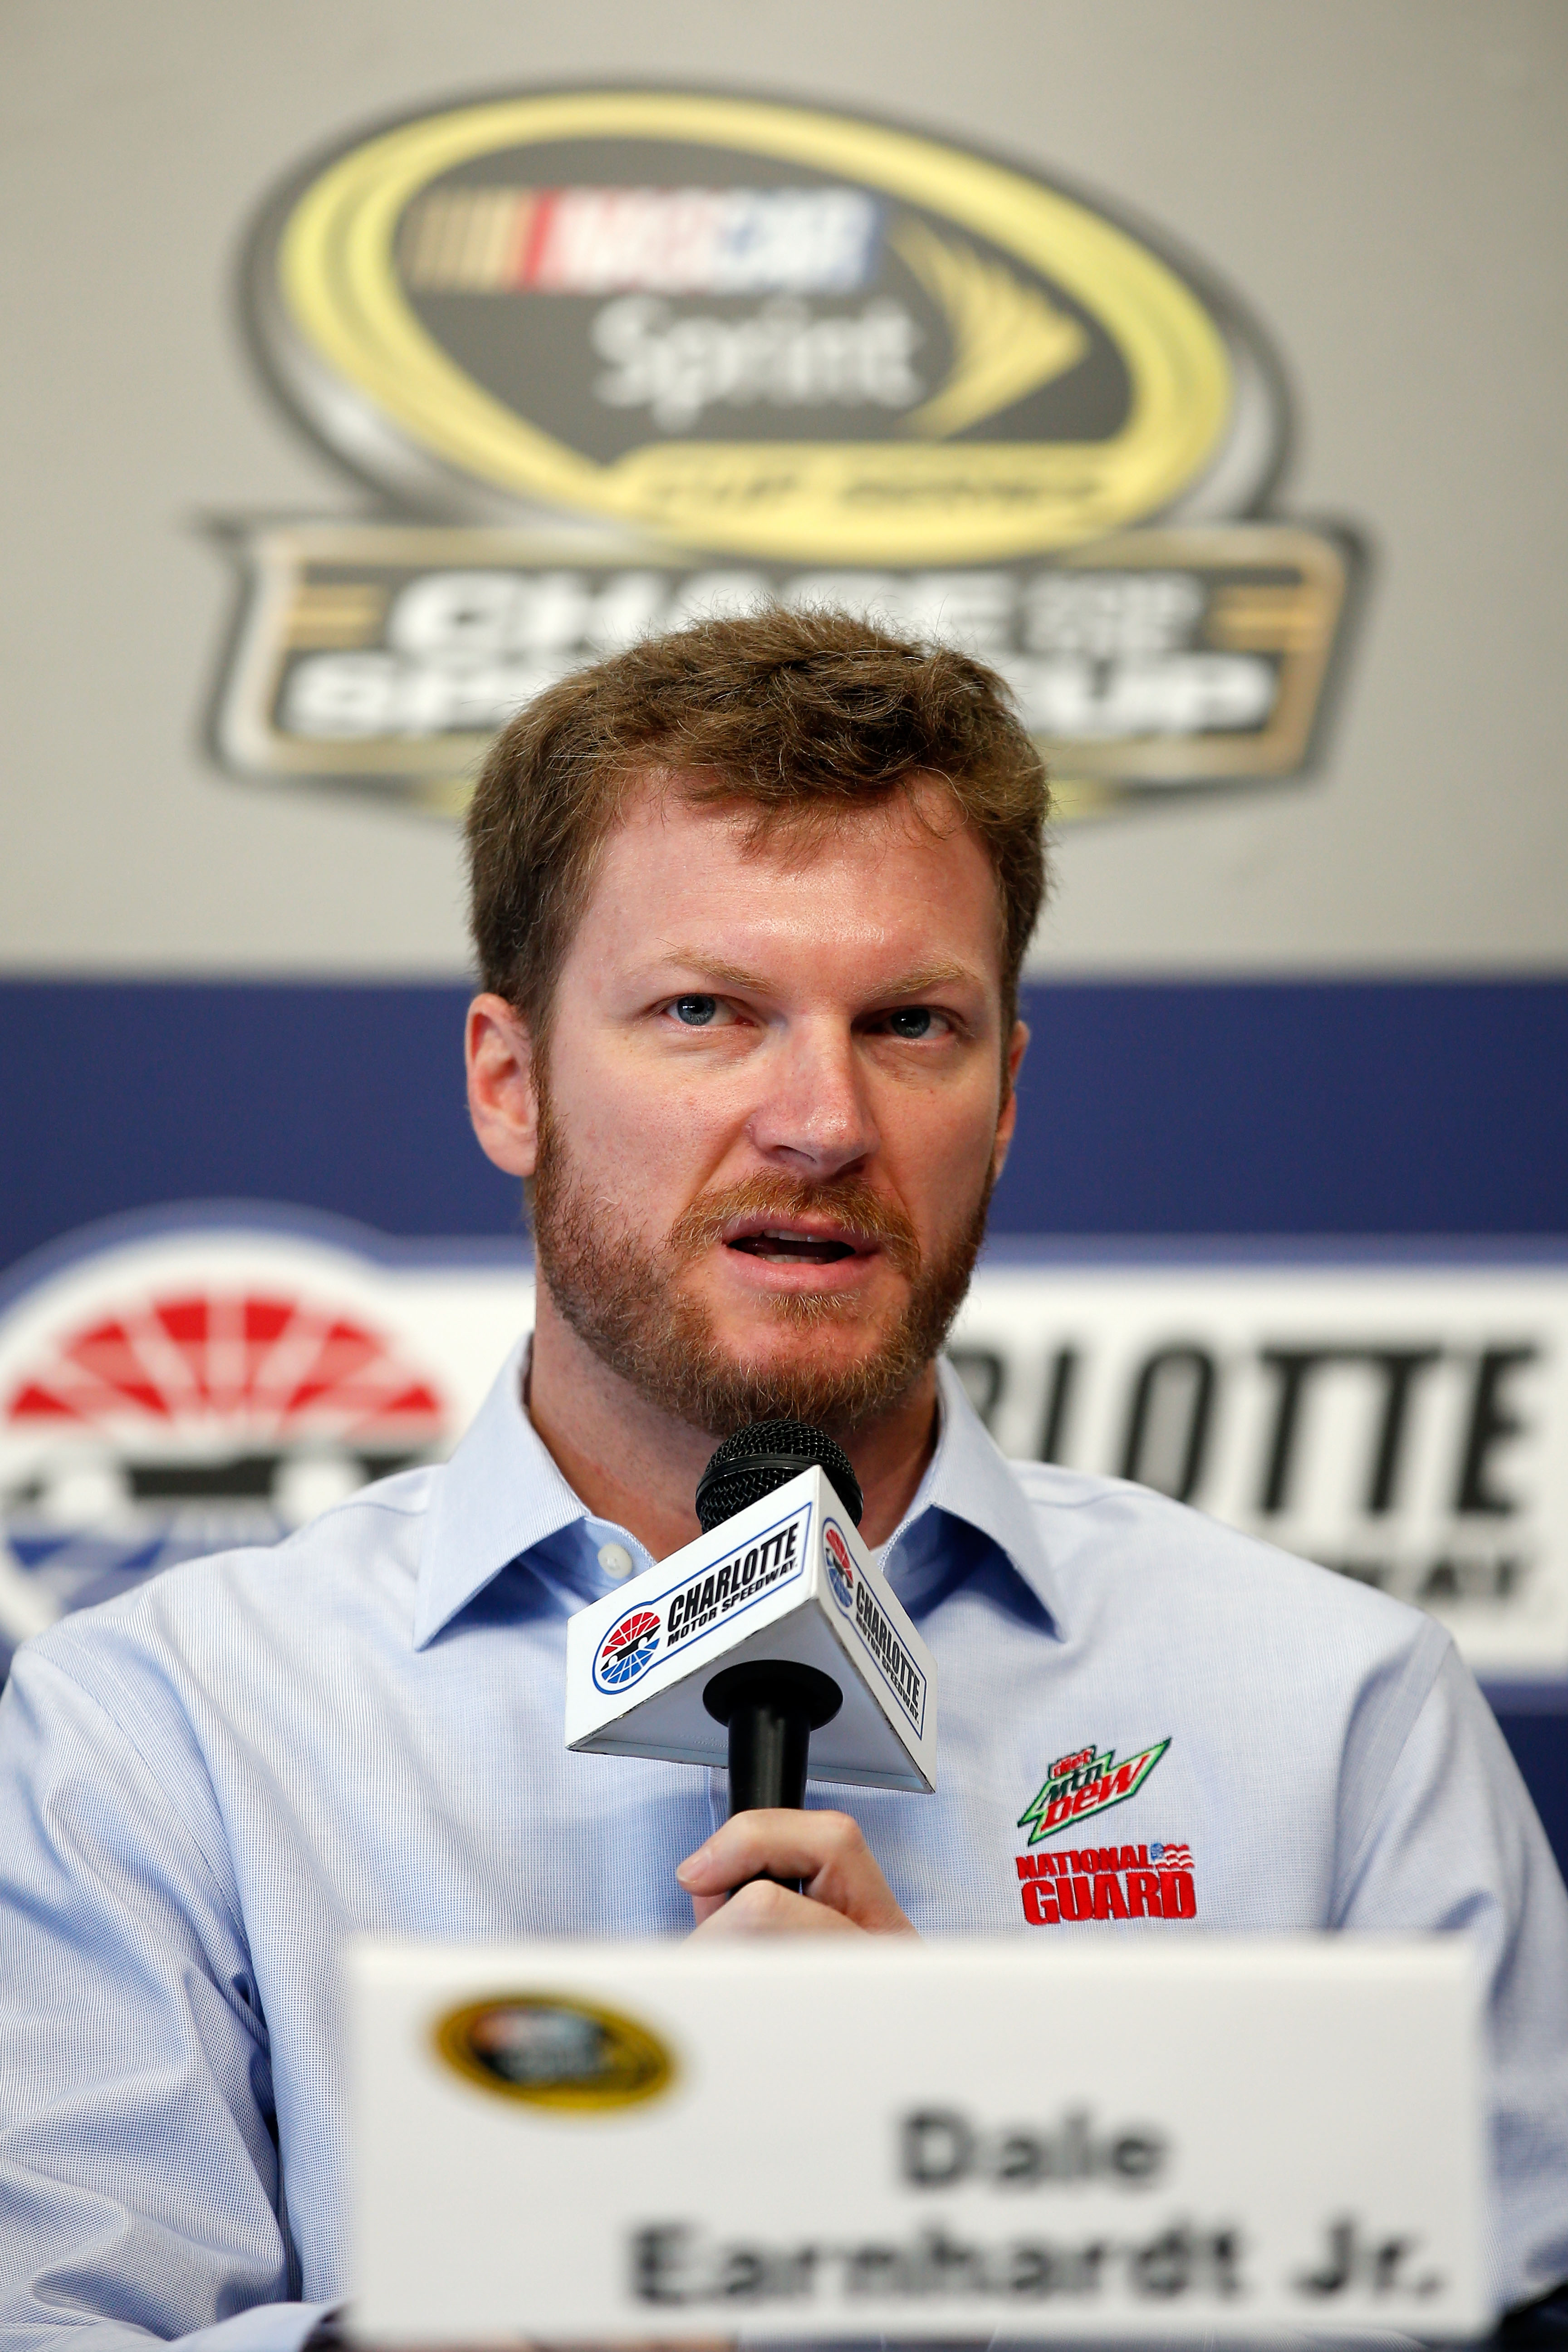 Parks Pit Report:  BREAKING NEWS-Dale Earnhardt Jr. Out till 2017